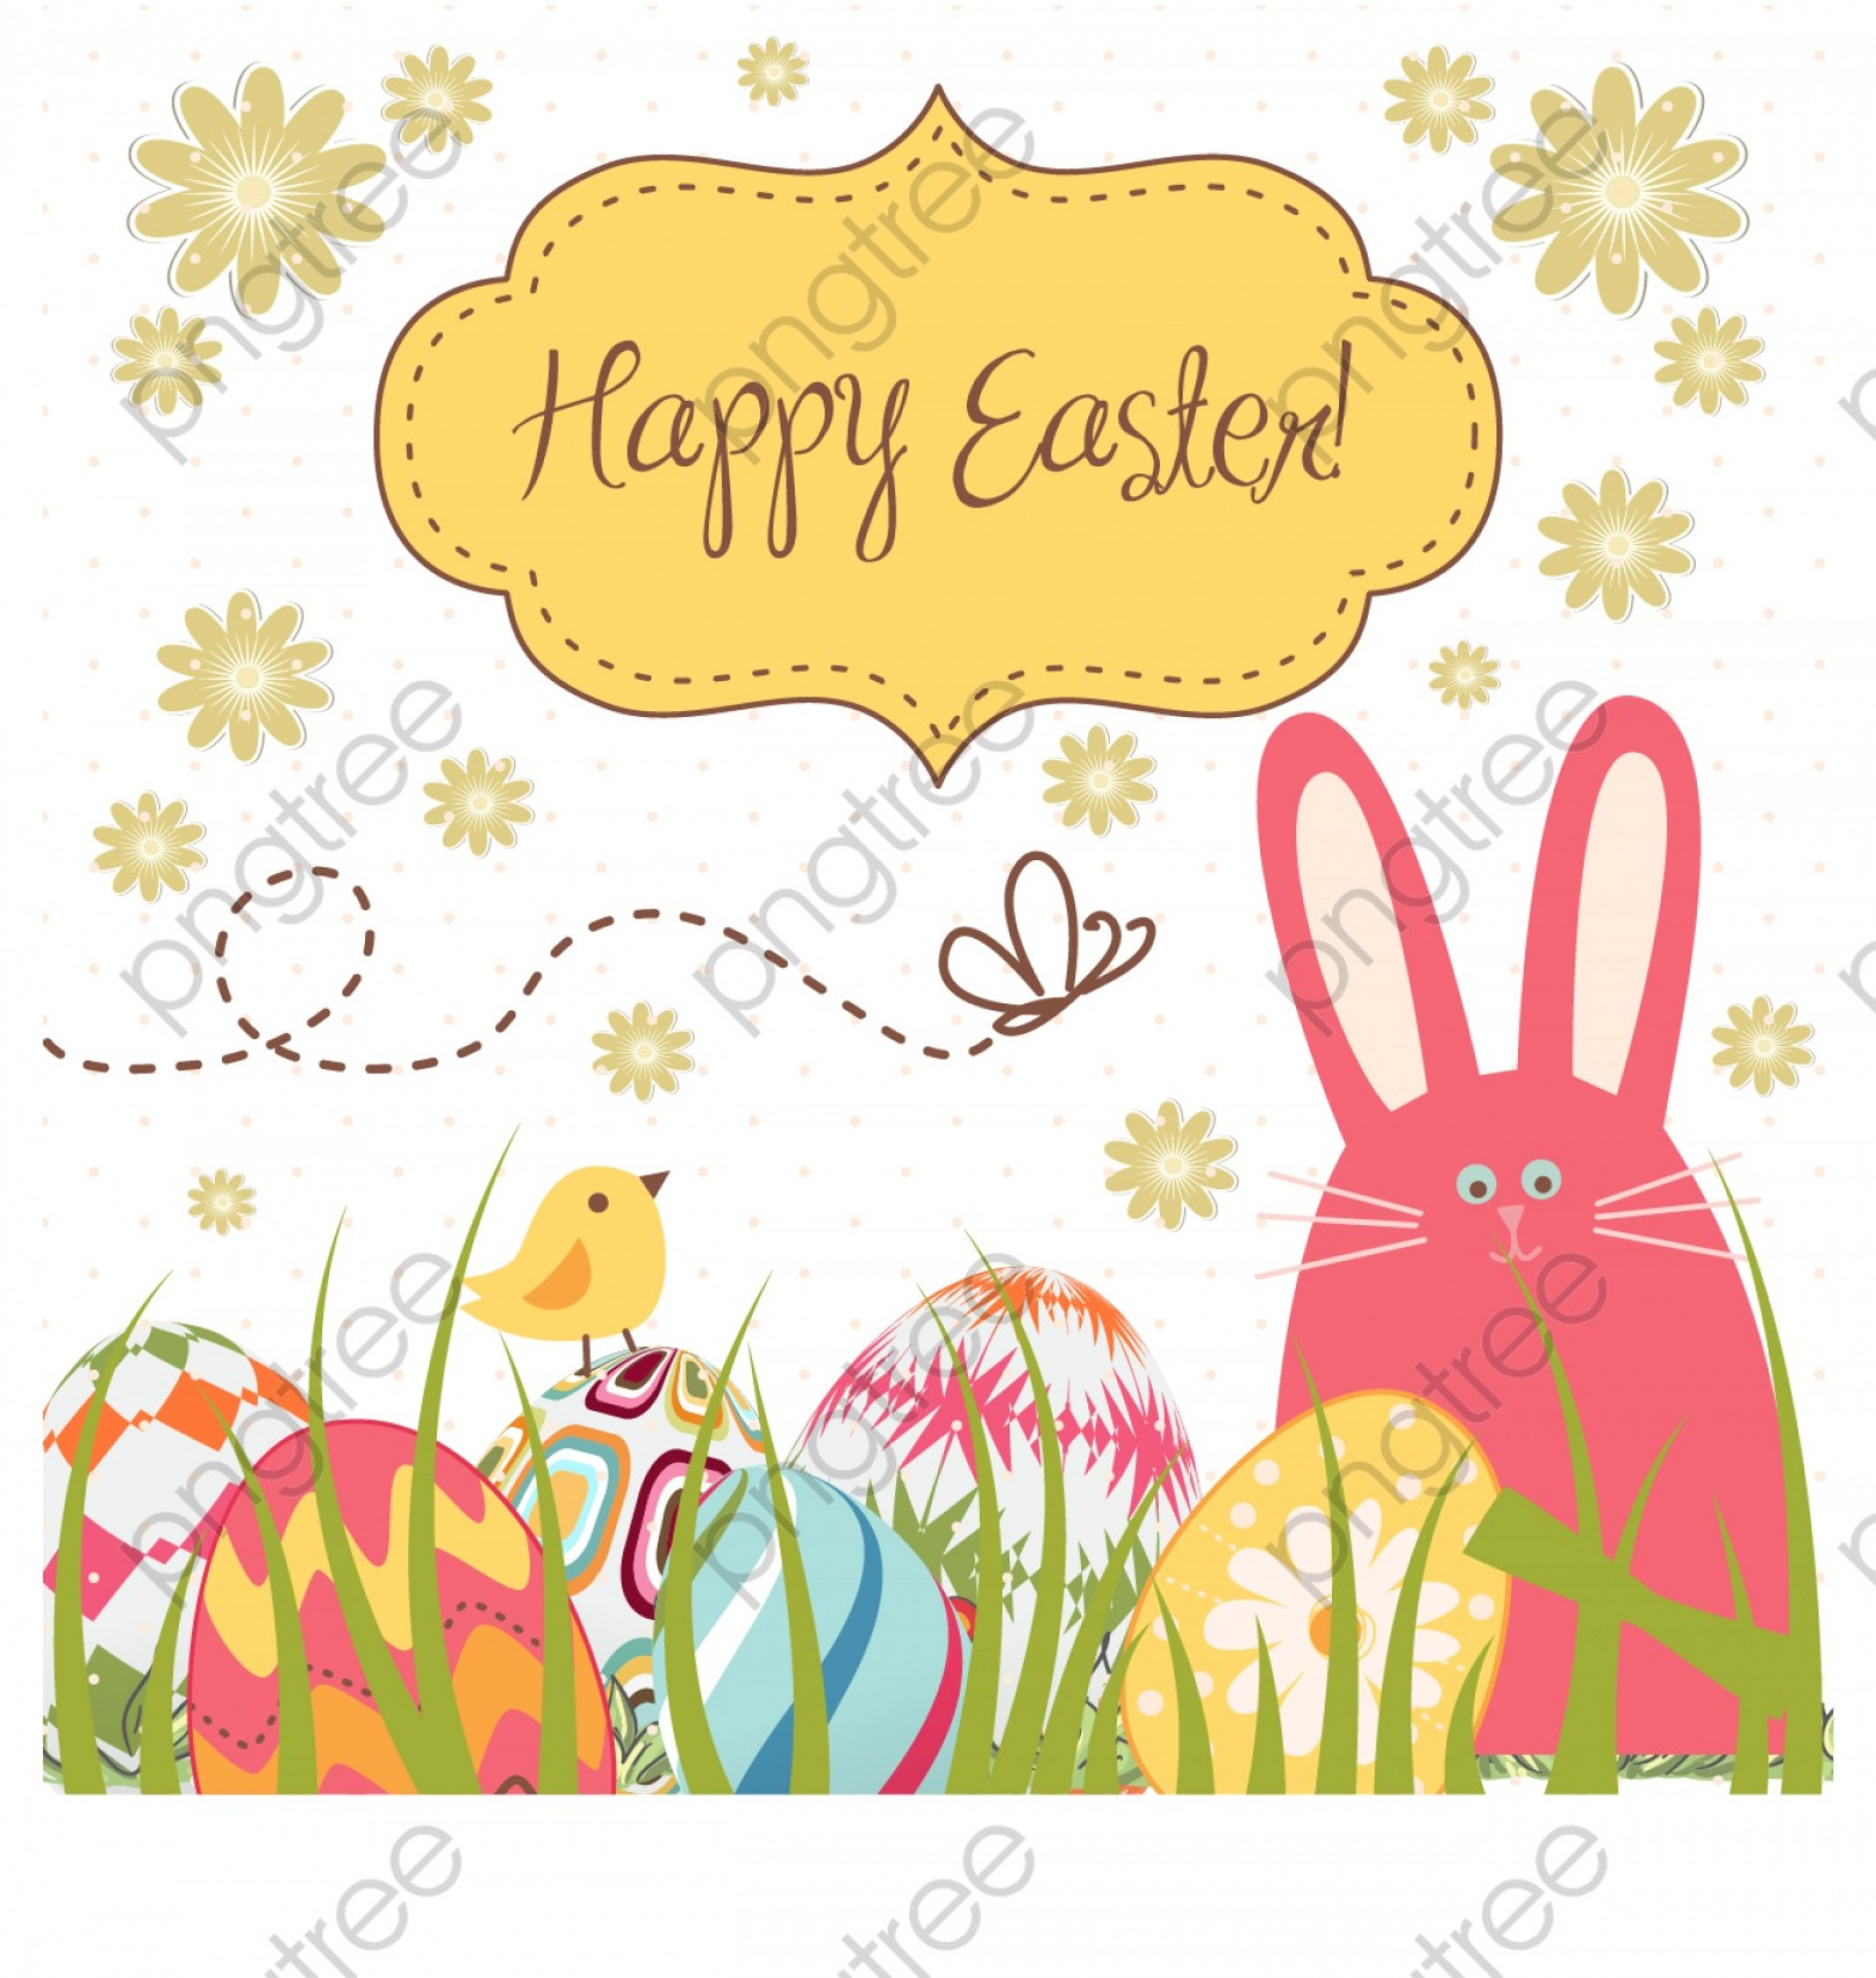 Easter Vector No Background: Easter Egg Bunny Vector Background Fabric